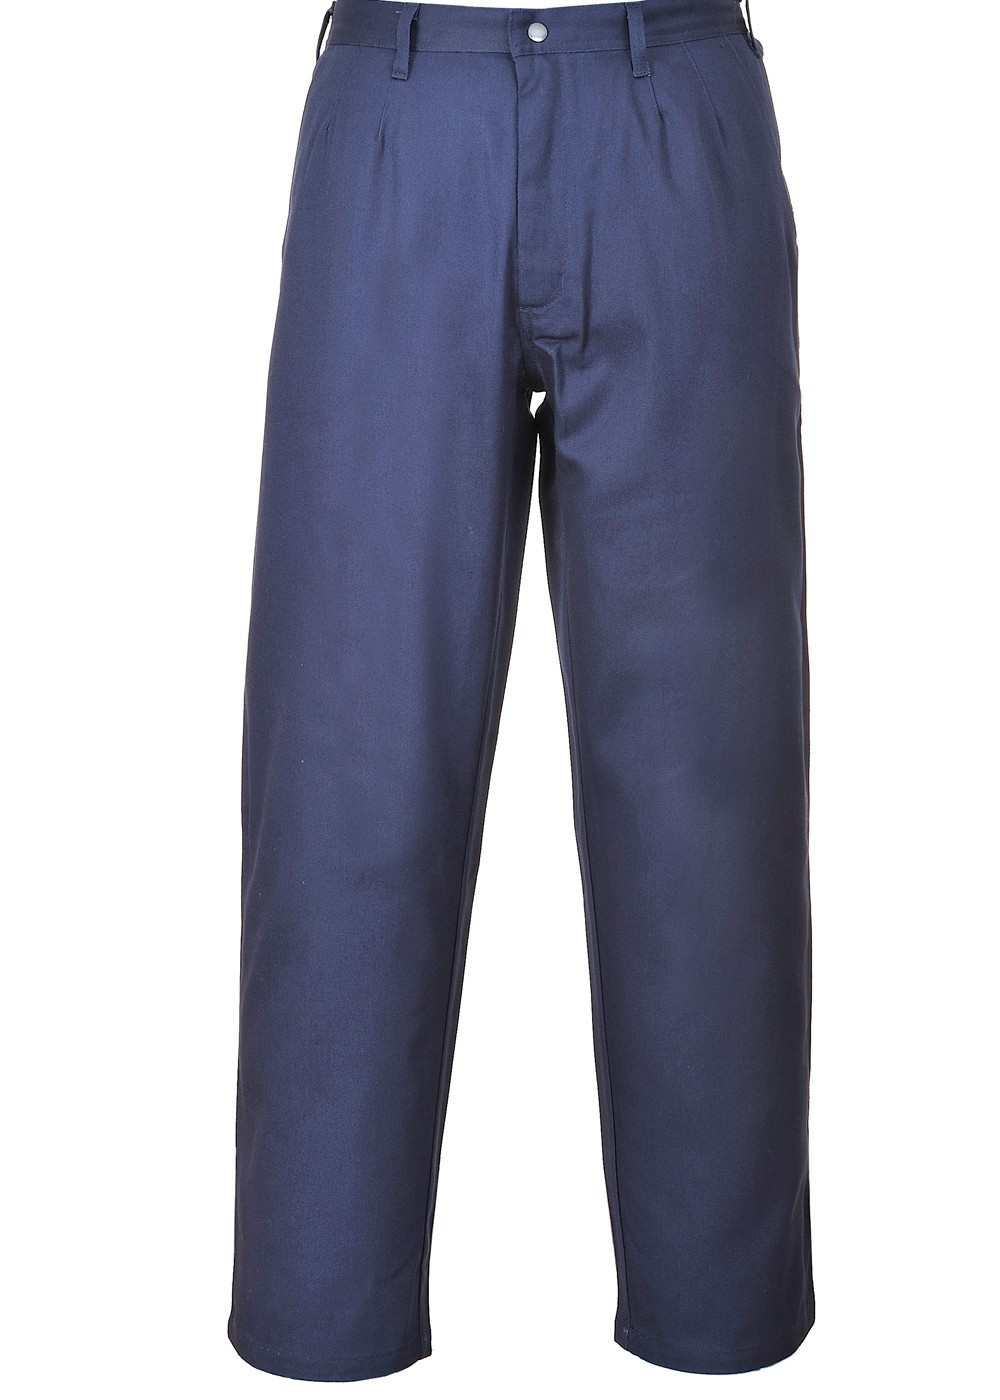 Bizflame Pro Trousers